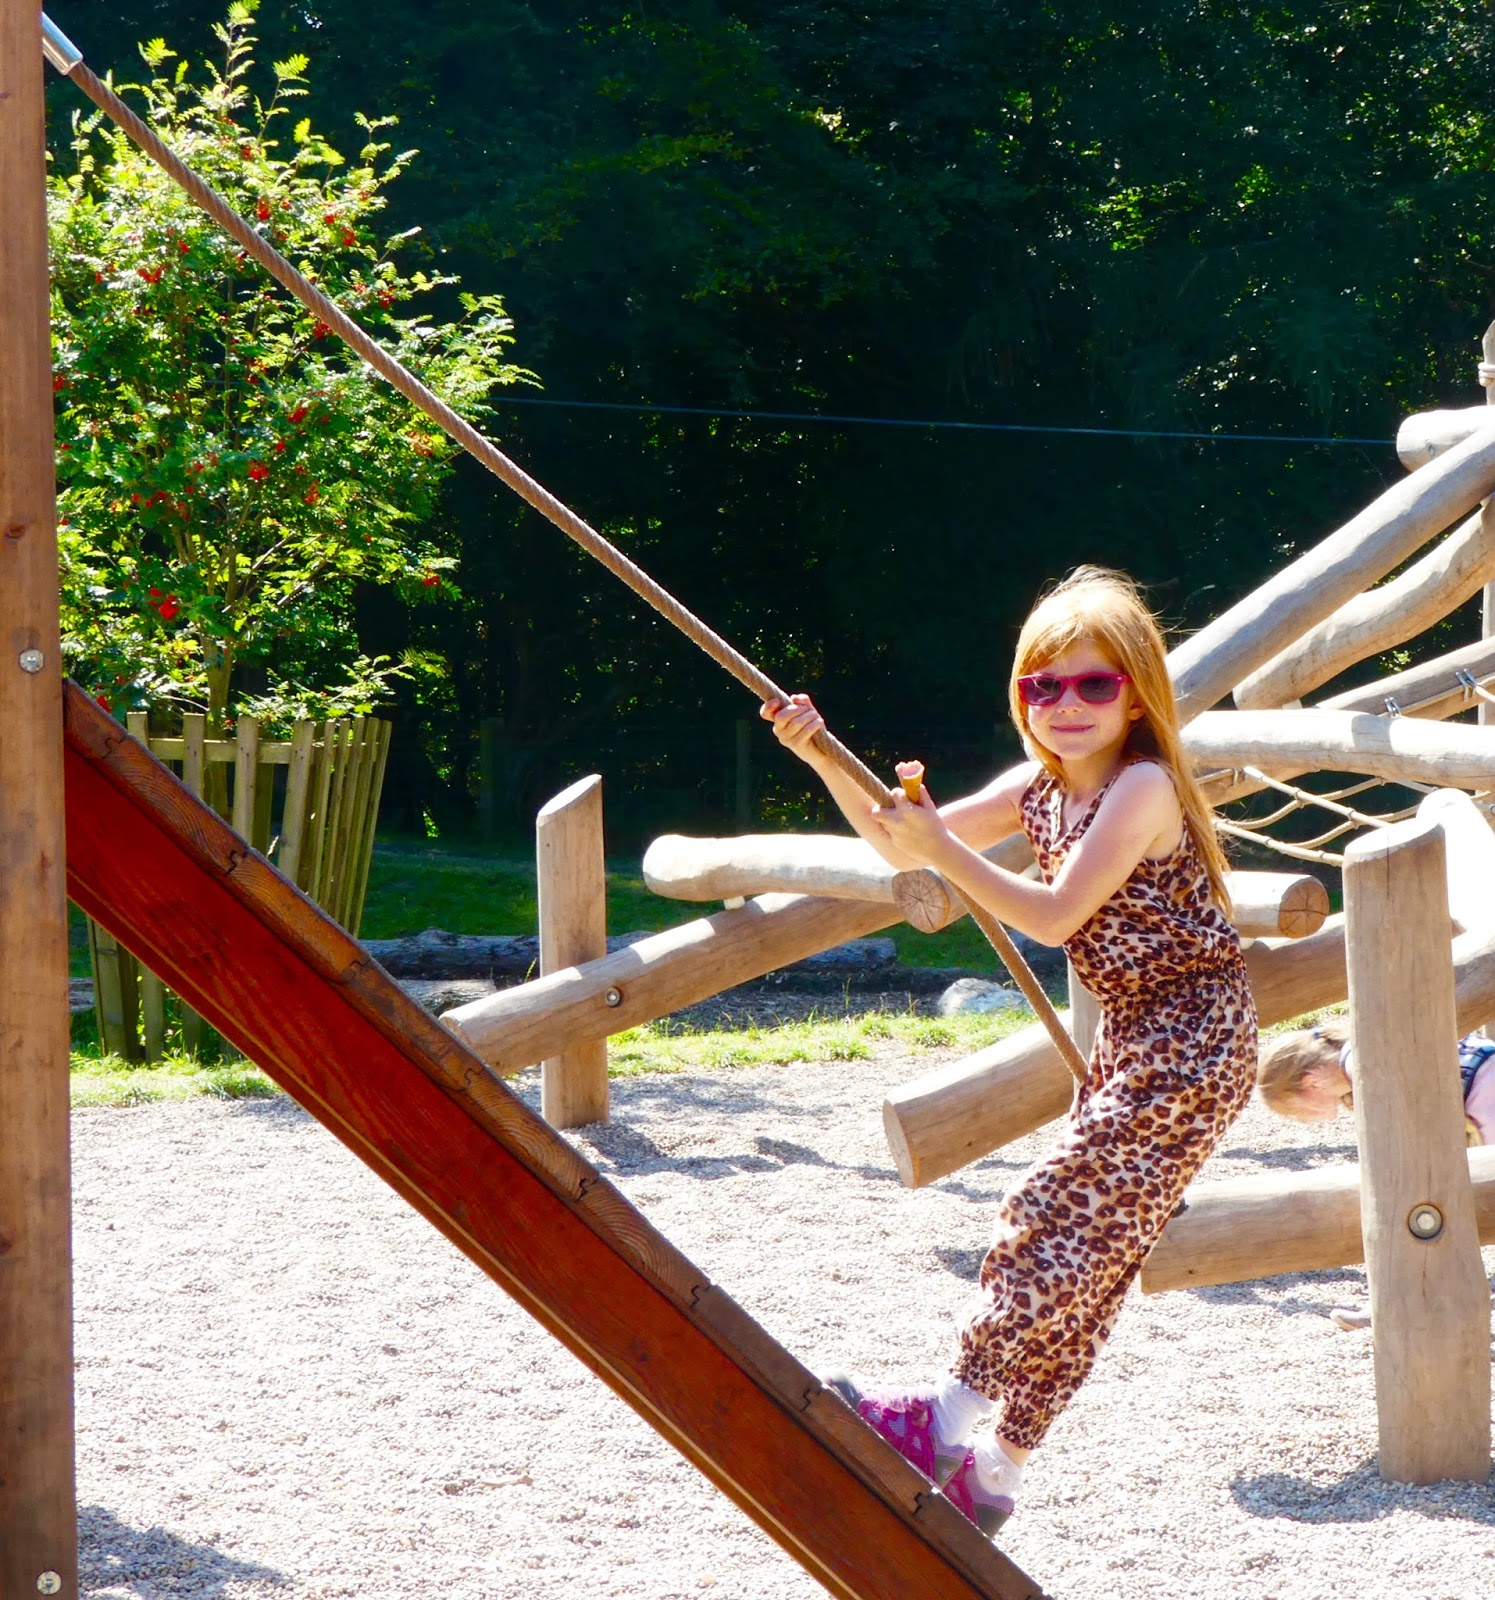 Gibside - A North East National Trust Property that's ideal for Picnics, Adventure Playground fun and beautiful gardens - Strawberry Castle Play Area